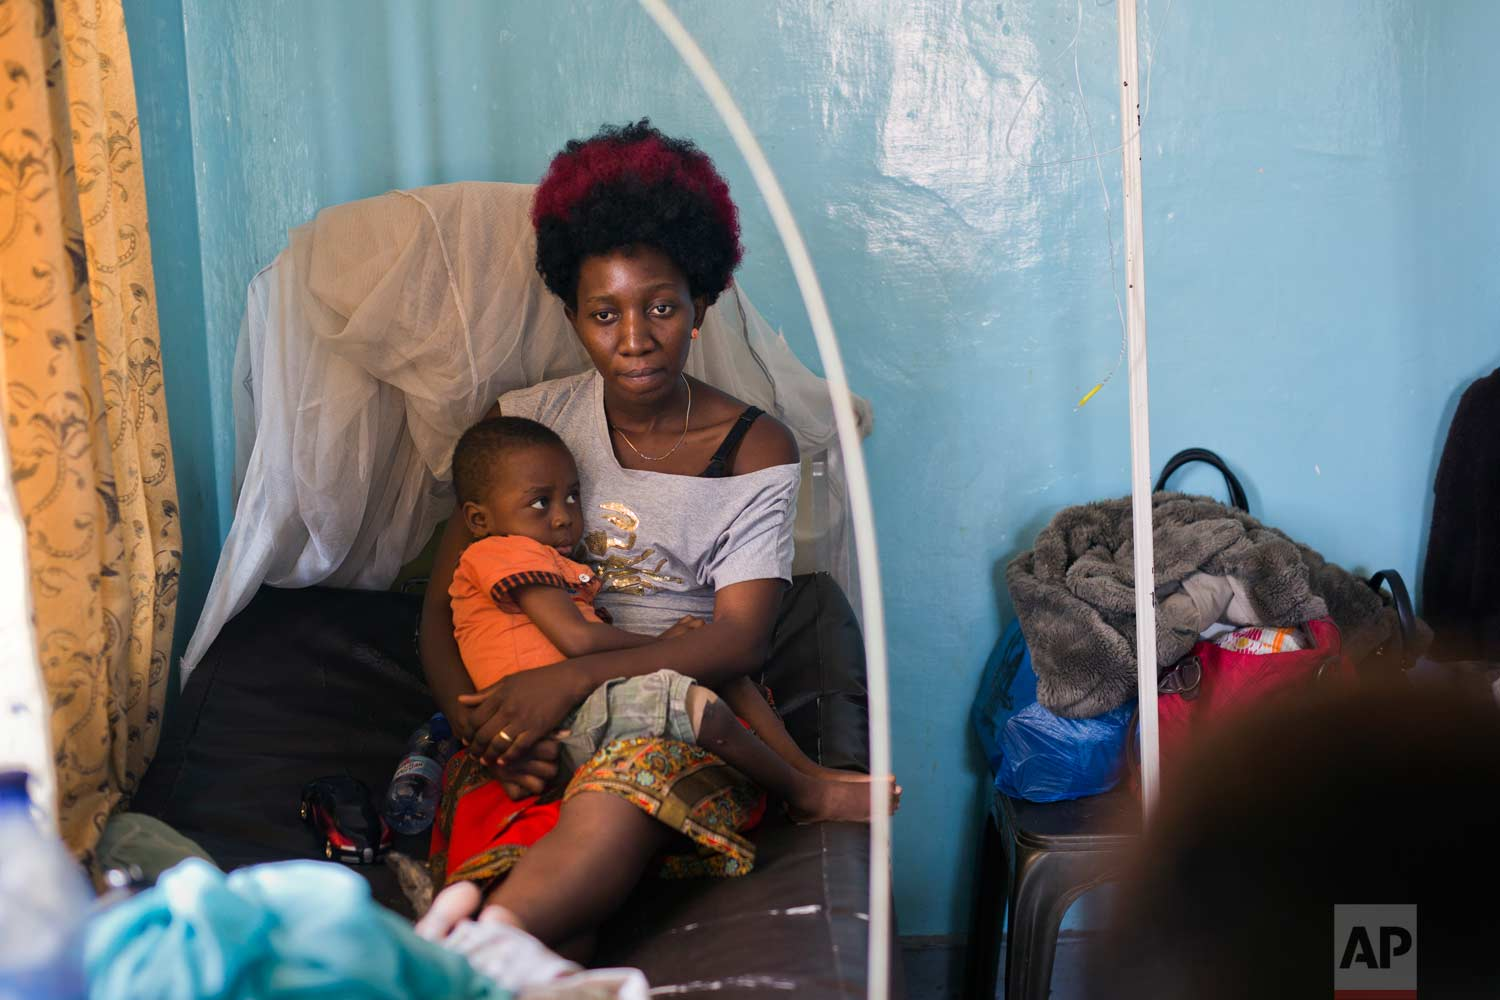 Ado Ntanga, 23, holds her son, Adrielle Nyembwe, 3, who was admitted to the Medicare Policlinic with Sickle Cell Anemia in Lubumbashi, Democratic Republic of the Congo on Wednesday, Aug. 15, 2018. They have both been detained for over a month, unable to pay the $850 medical bill for Adrielle. (AP Photo/Jerome Delay)